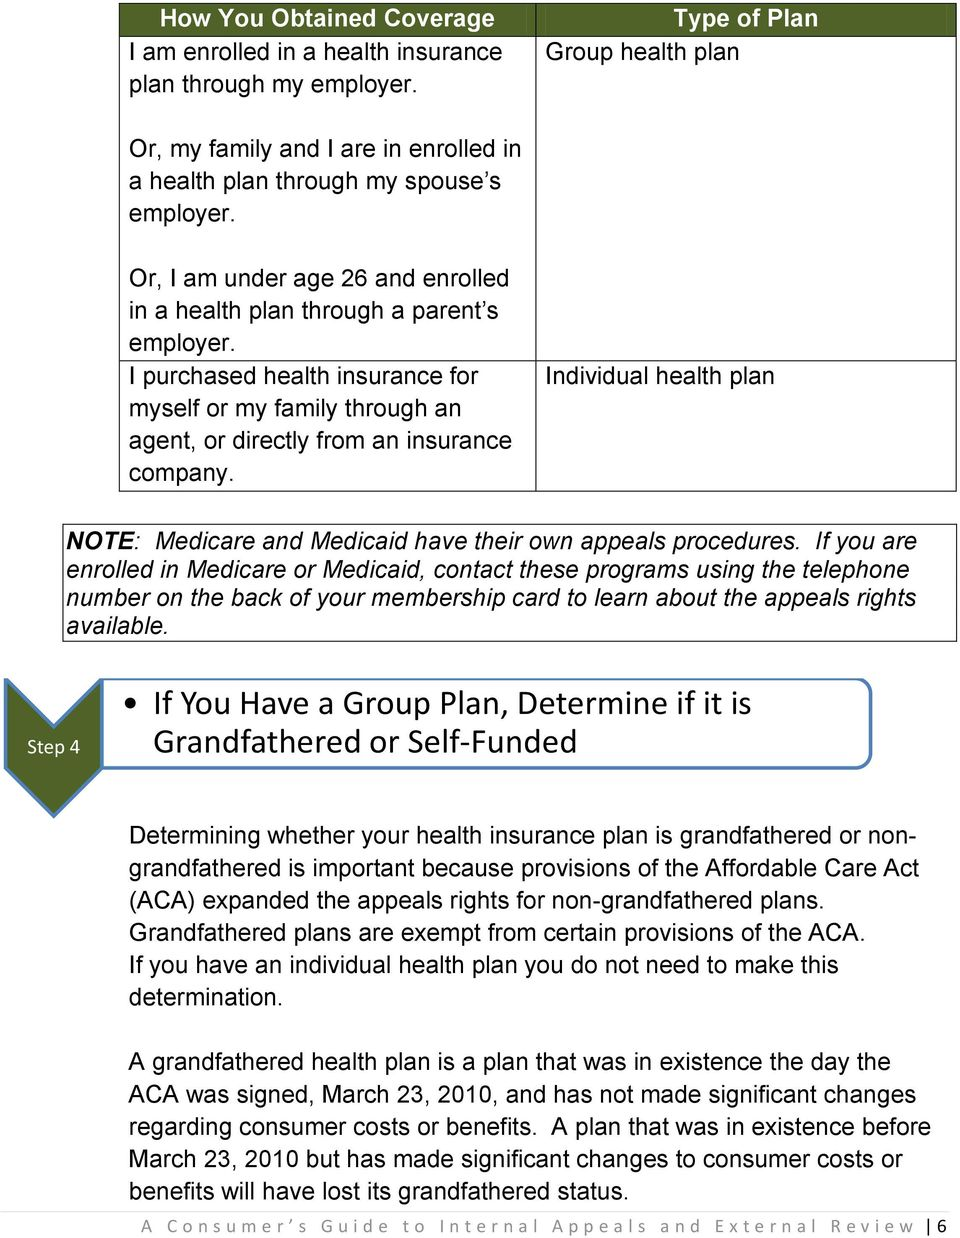 I purchased health insurance for myself or my family through an agent, or directly from an insurance company. Individual health plan NOTE: Medicare and Medicaid have their own appeals procedures.